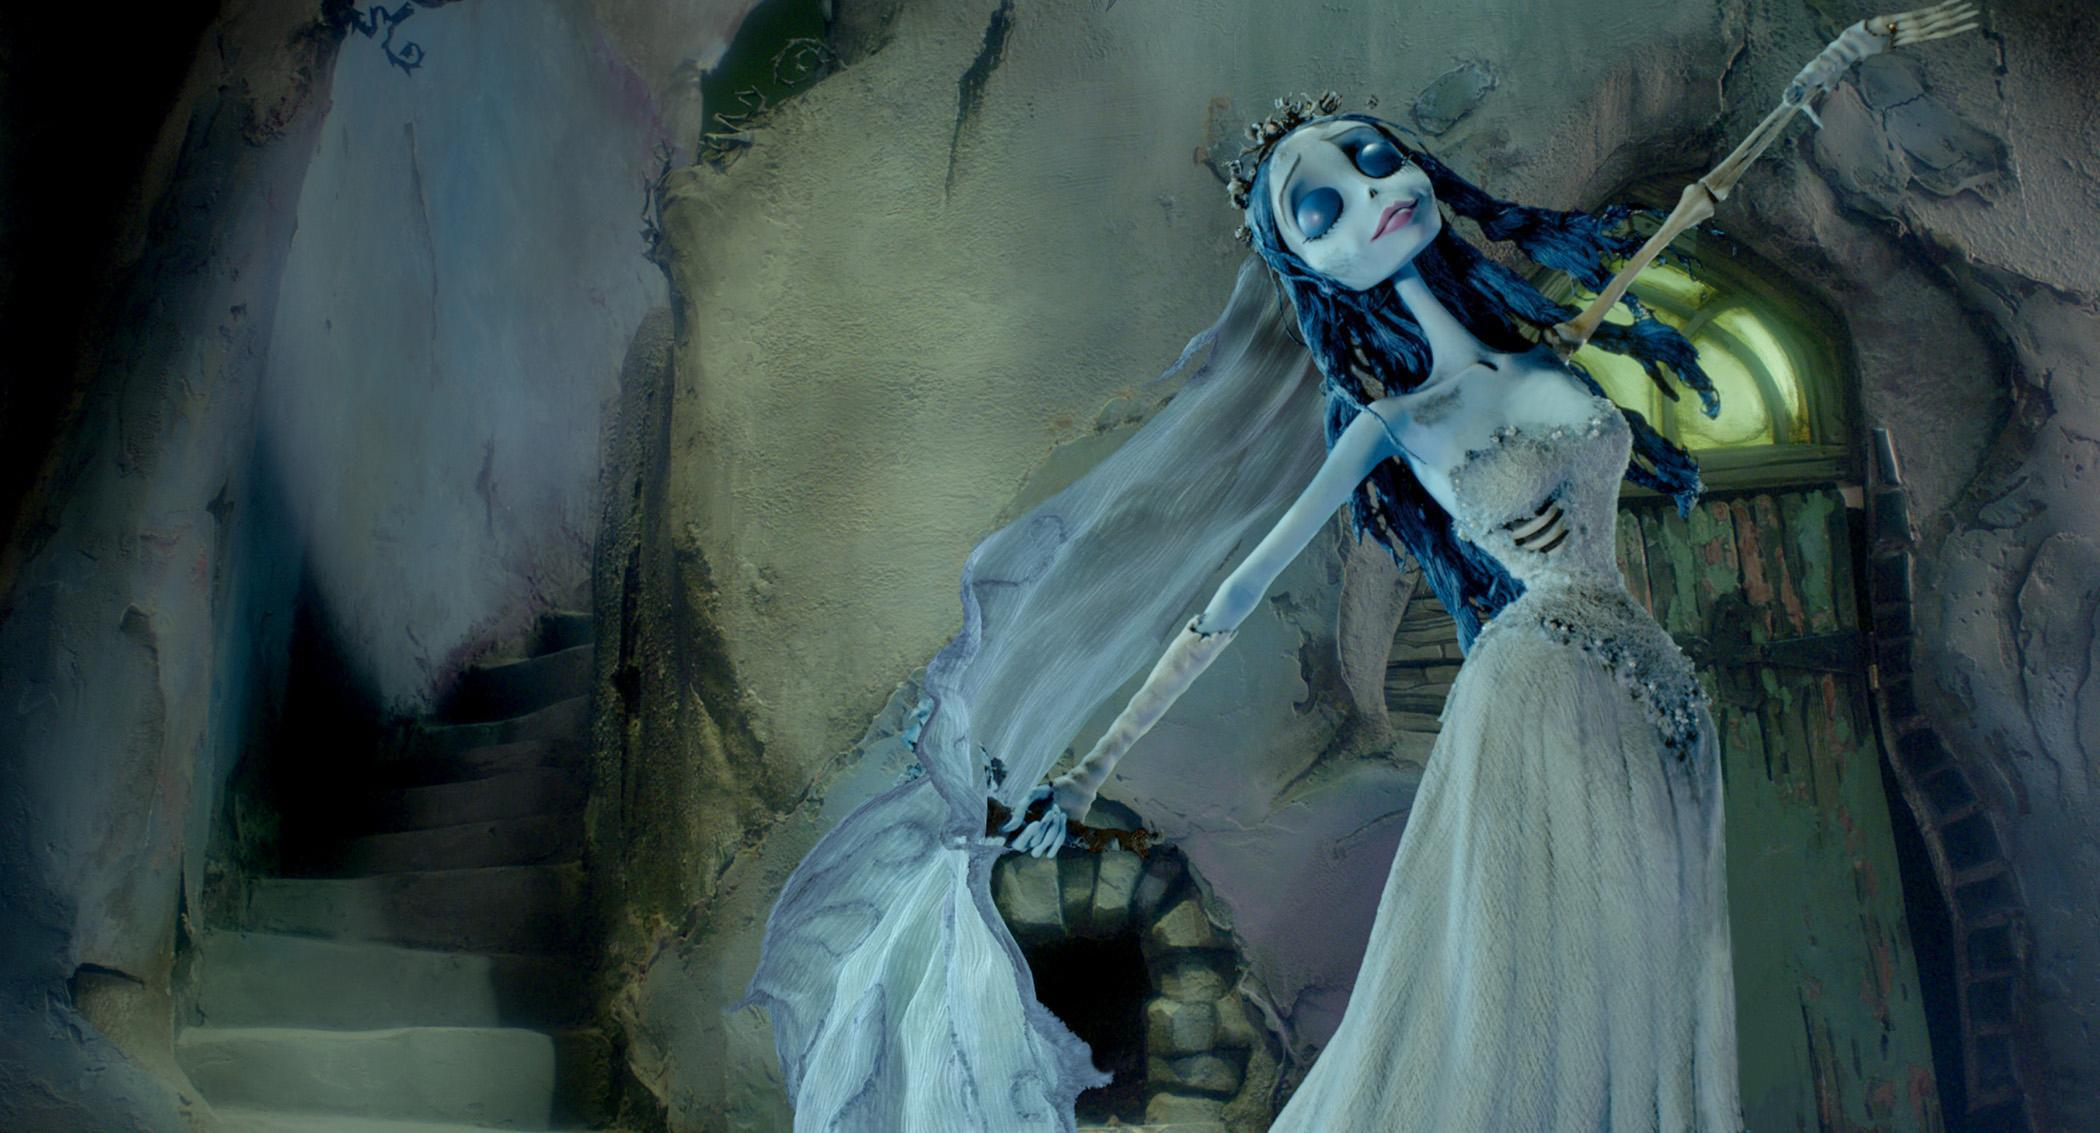 corpse bride movie wallpapers - photo #11